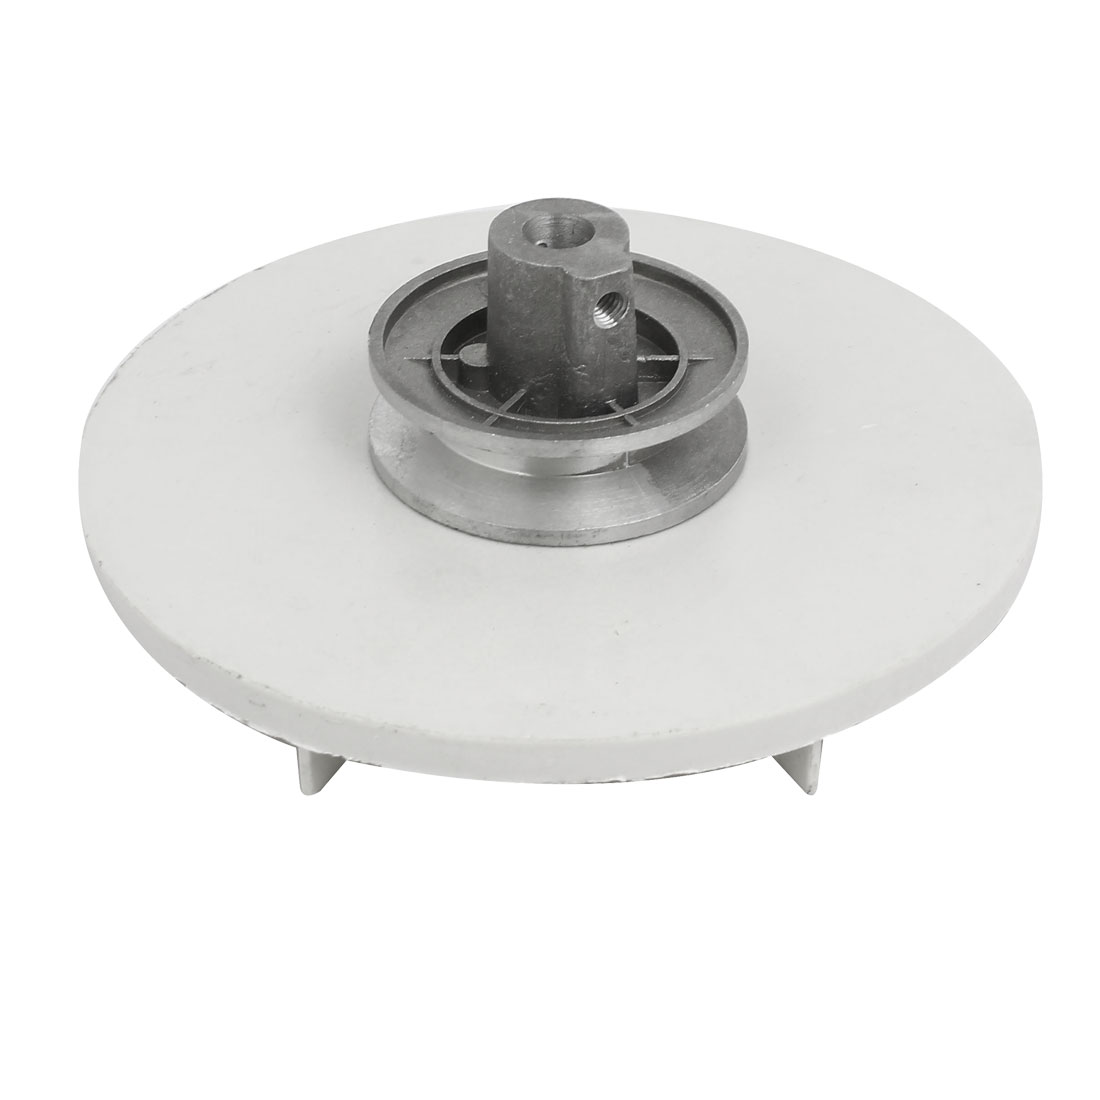 143mm Dia 54mm Height Washing Machine Drive Pulley Wheel Silver Tone